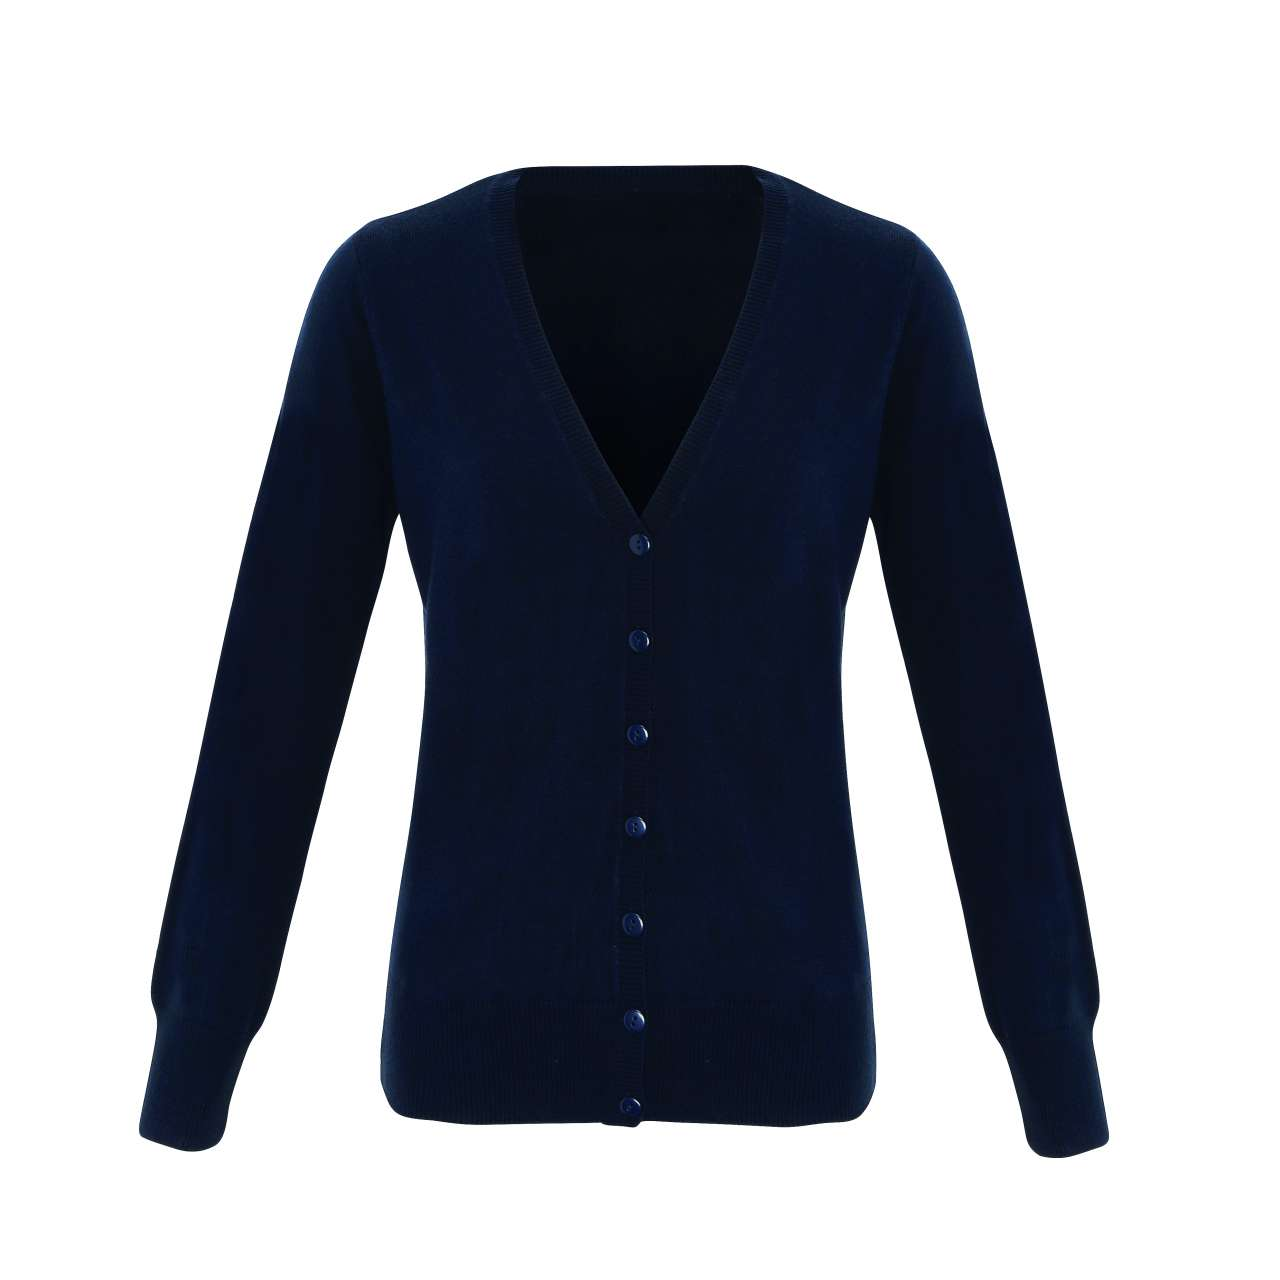 'ESSENTIAL' LADIES' ACRYLIC V-NECK CARDIGAN